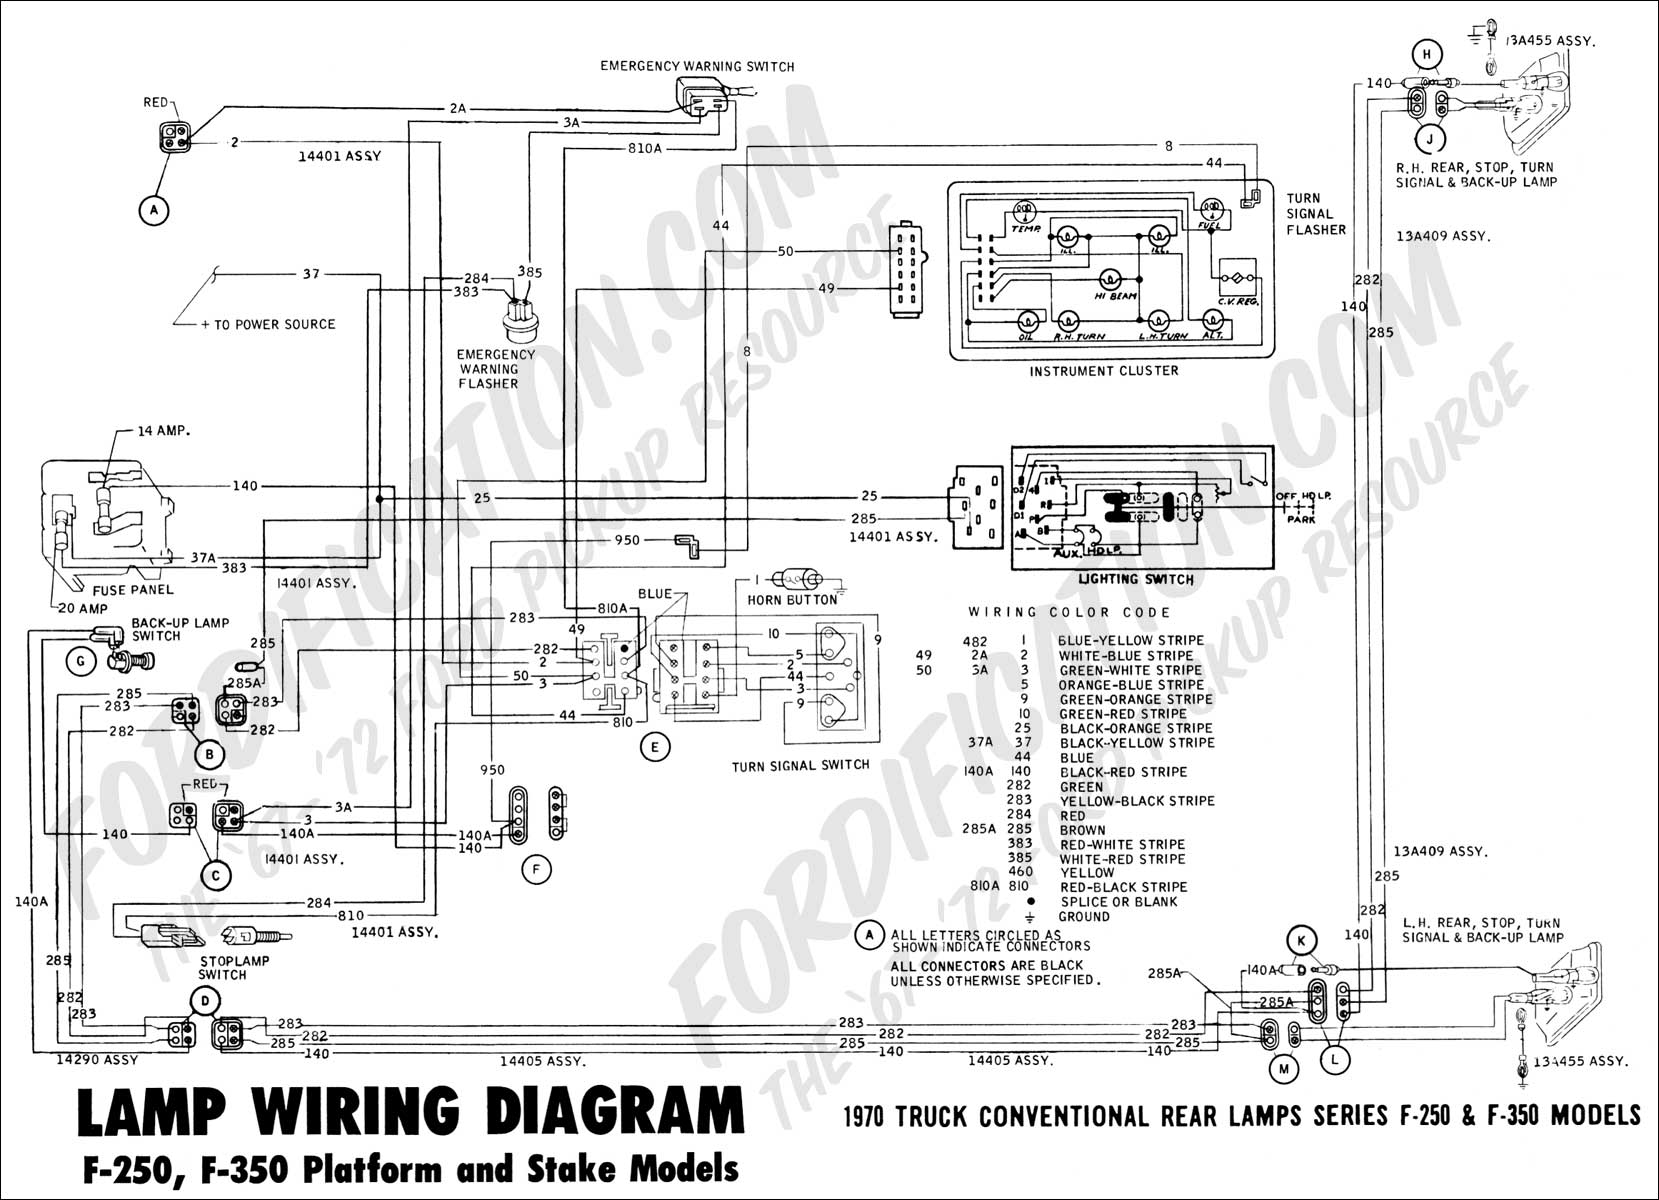 hight resolution of 2002 f150 wiring diagram wiring diagram for you rh 9 14 5 carrera rennwelt de 2002 f150 ignition wiring diagram 2002 f150 wiring diagram